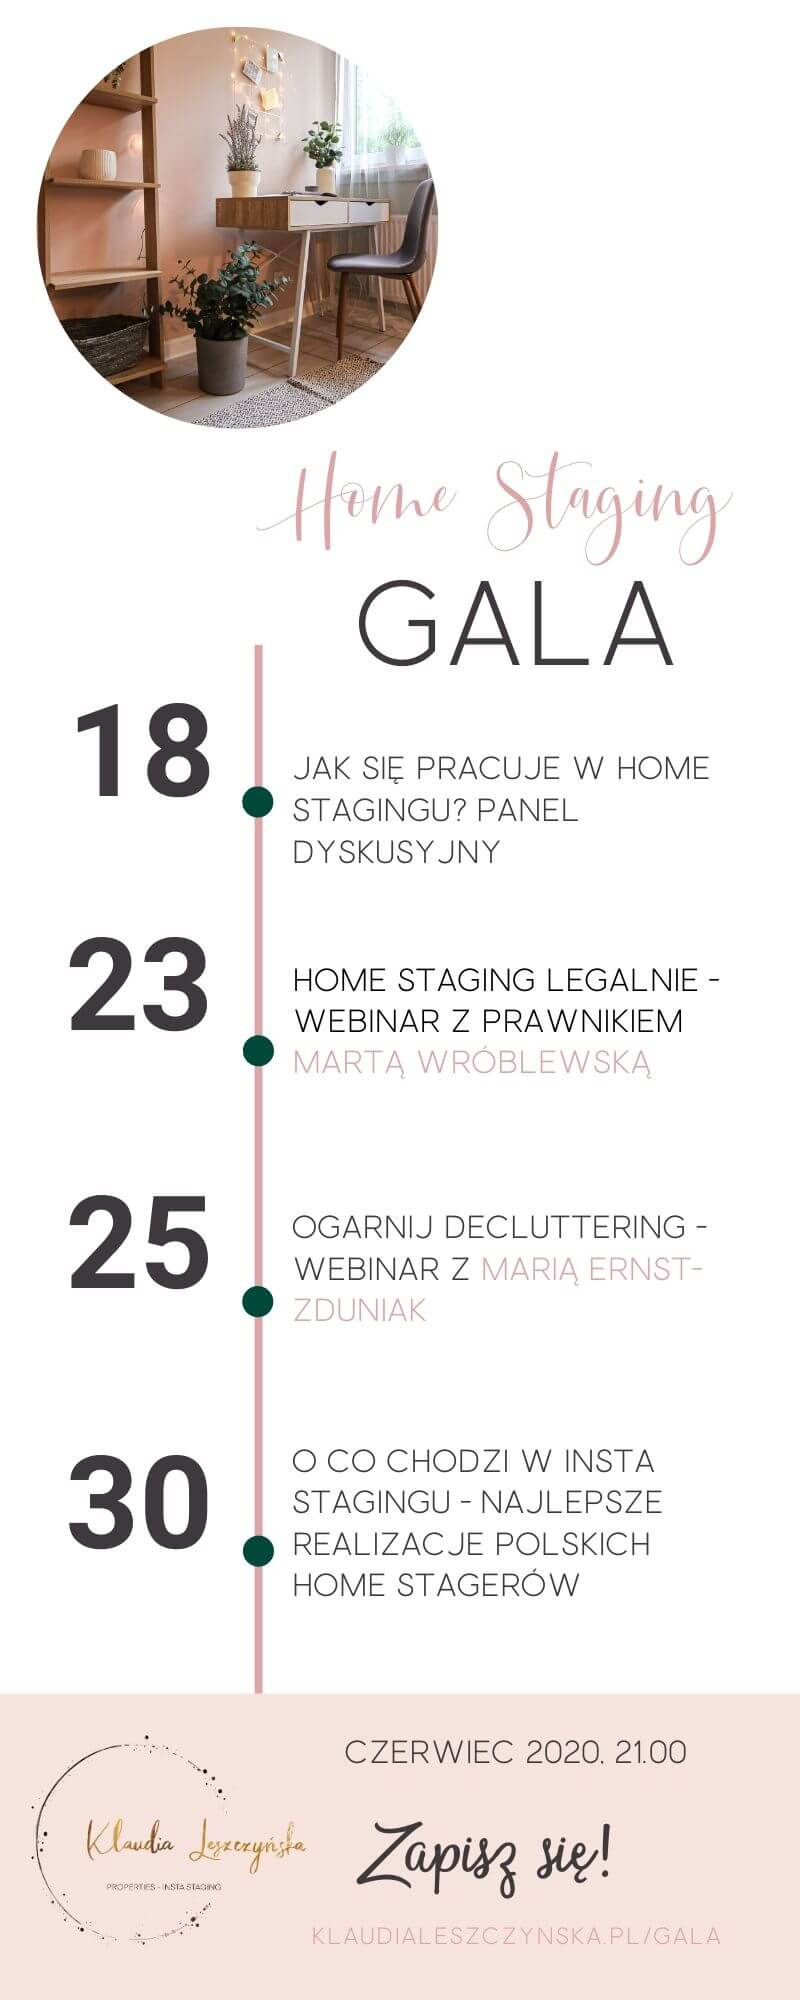 Home Staging Gala